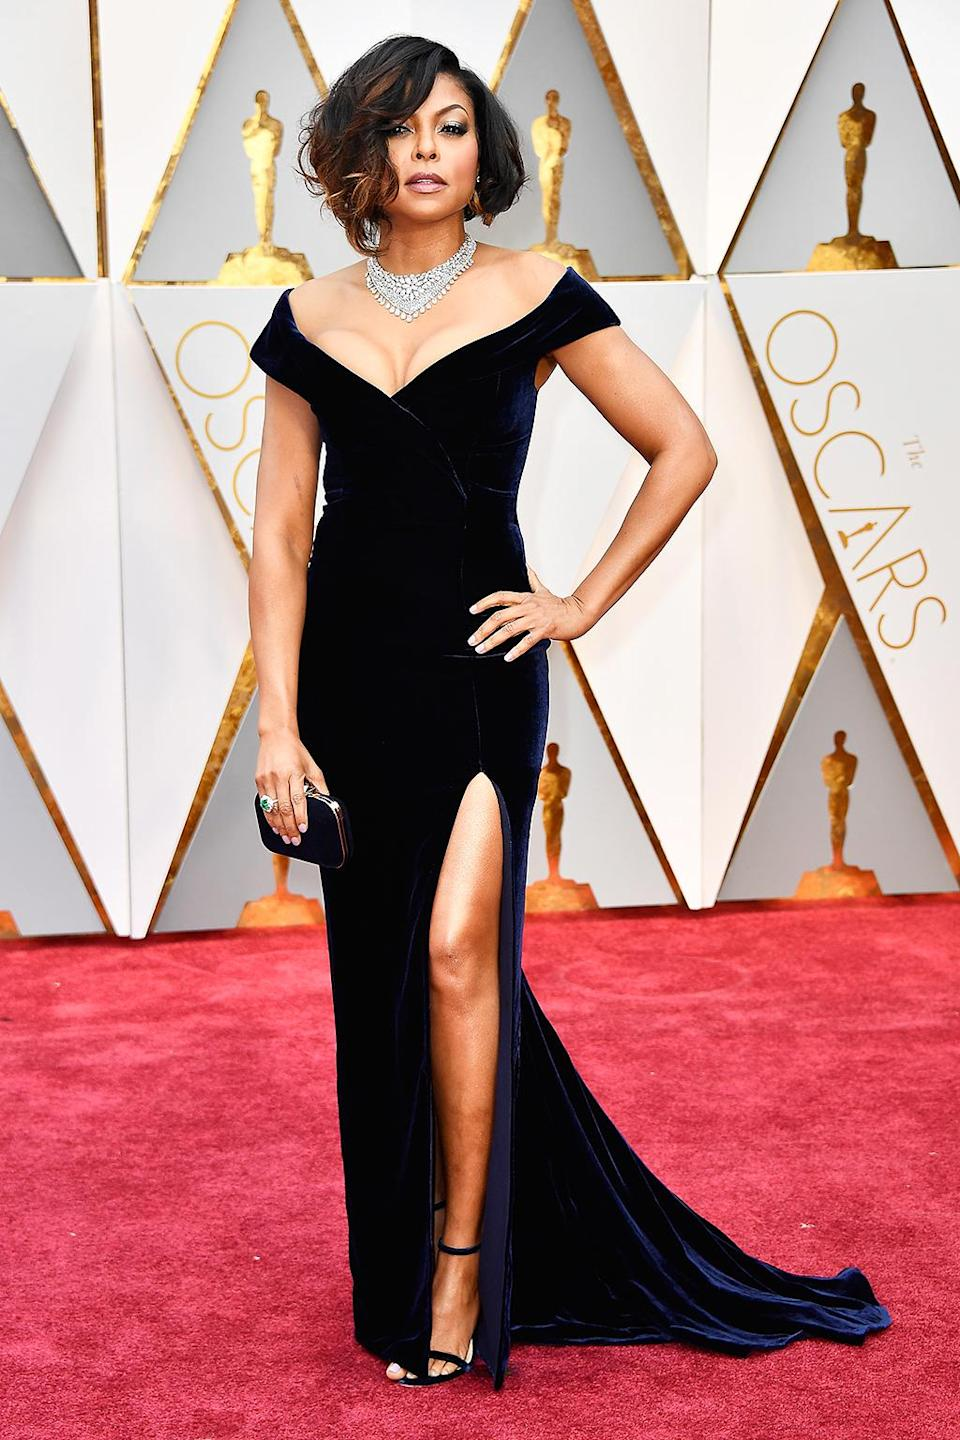 """<p>Actress Taraji P. Henson attends the 89th Annual Academy Awards at Hollywood & Highland Center on February 26, 2017 in Hollywood, California. (Photo by Frazer Harrison/Getty Images)<br><br><a href=""""https://www.yahoo.com/style/oscars-2017-vote-for-the-best-and-worst-dressed-225105125.html"""" data-ylk=""""slk:Go here to vote for best and worst dressed.;outcm:mb_qualified_link;_E:mb_qualified_link;ct:story;"""" class=""""link rapid-noclick-resp yahoo-link"""">Go here to vote for best and worst dressed.</a> </p>"""